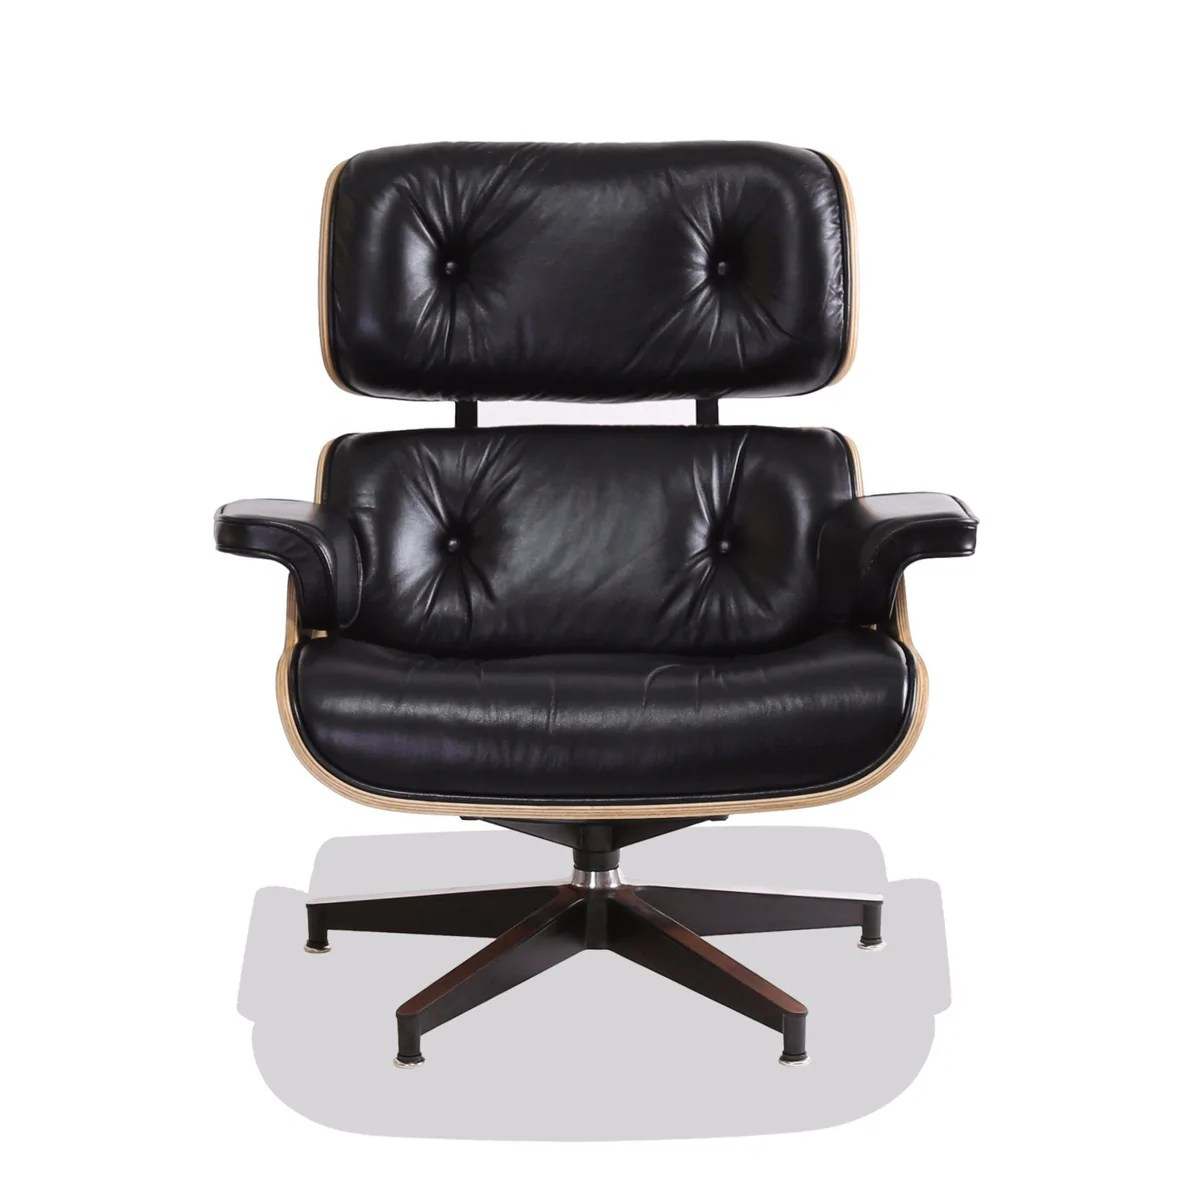 Sedia Wooden Eames Sedia Eames Replica Eames Style Lounge Chair Black Leather With